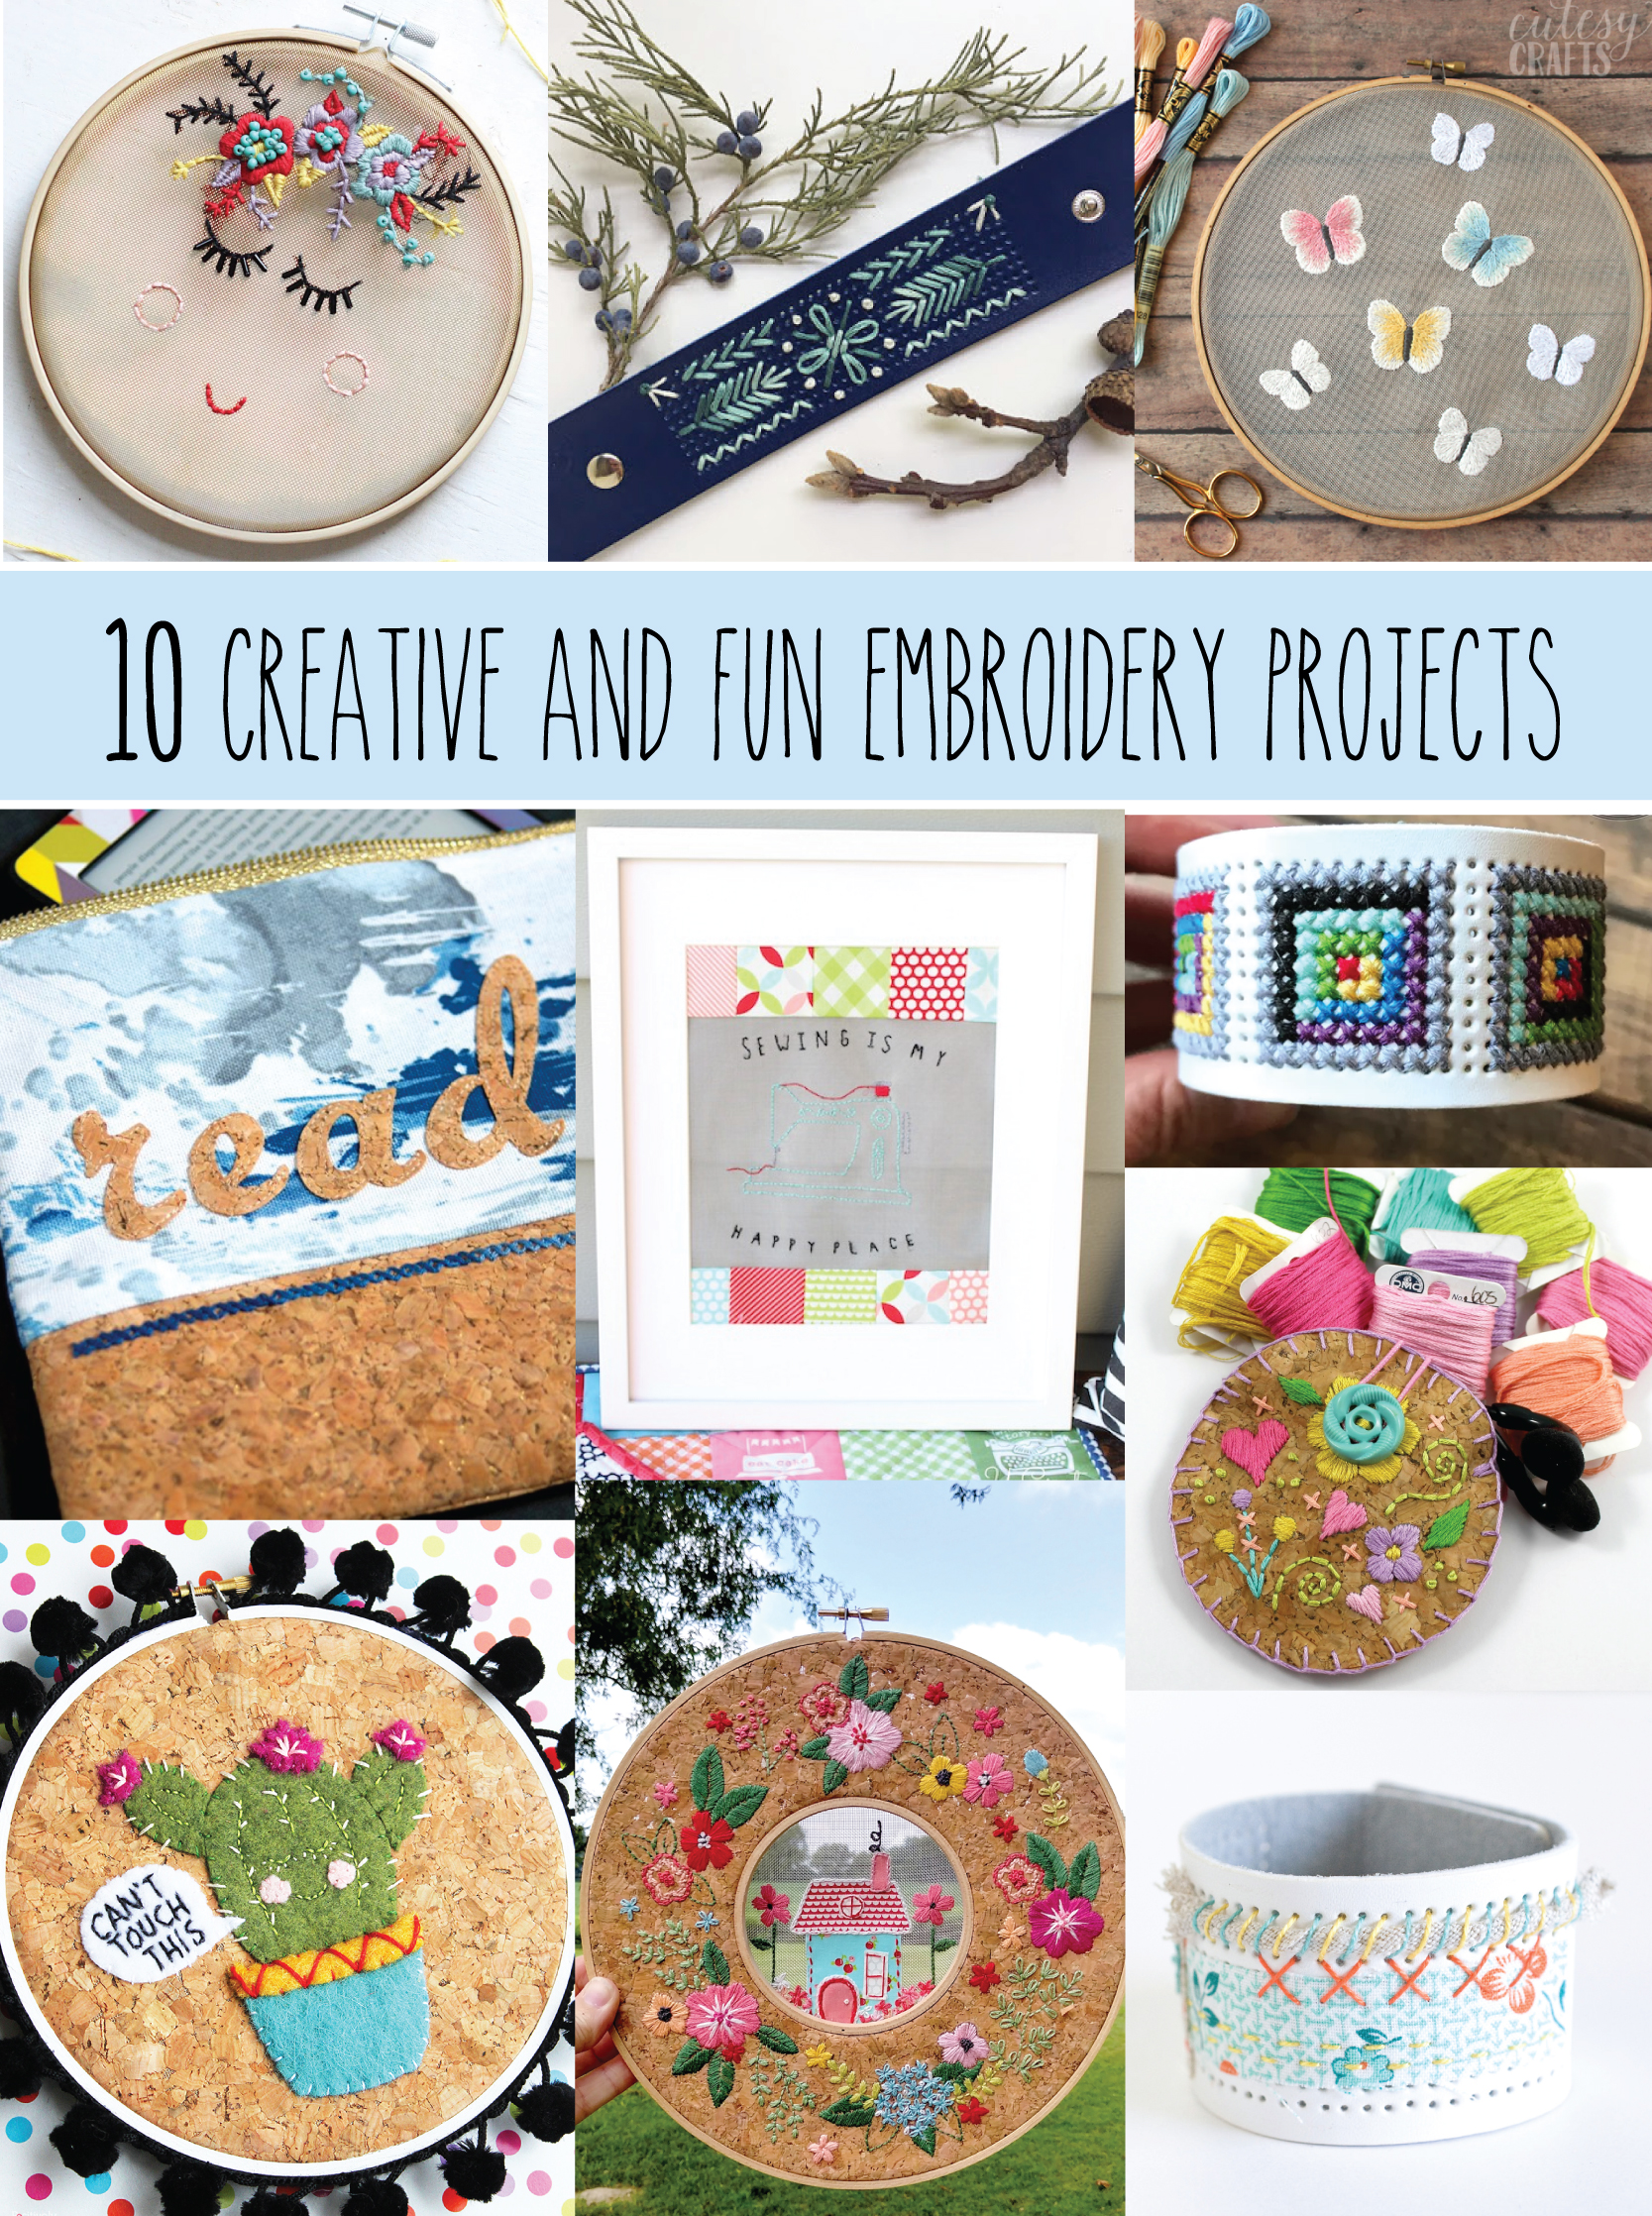 10 Creative and Fun Embroidery Projects - these free patterns are all so great!